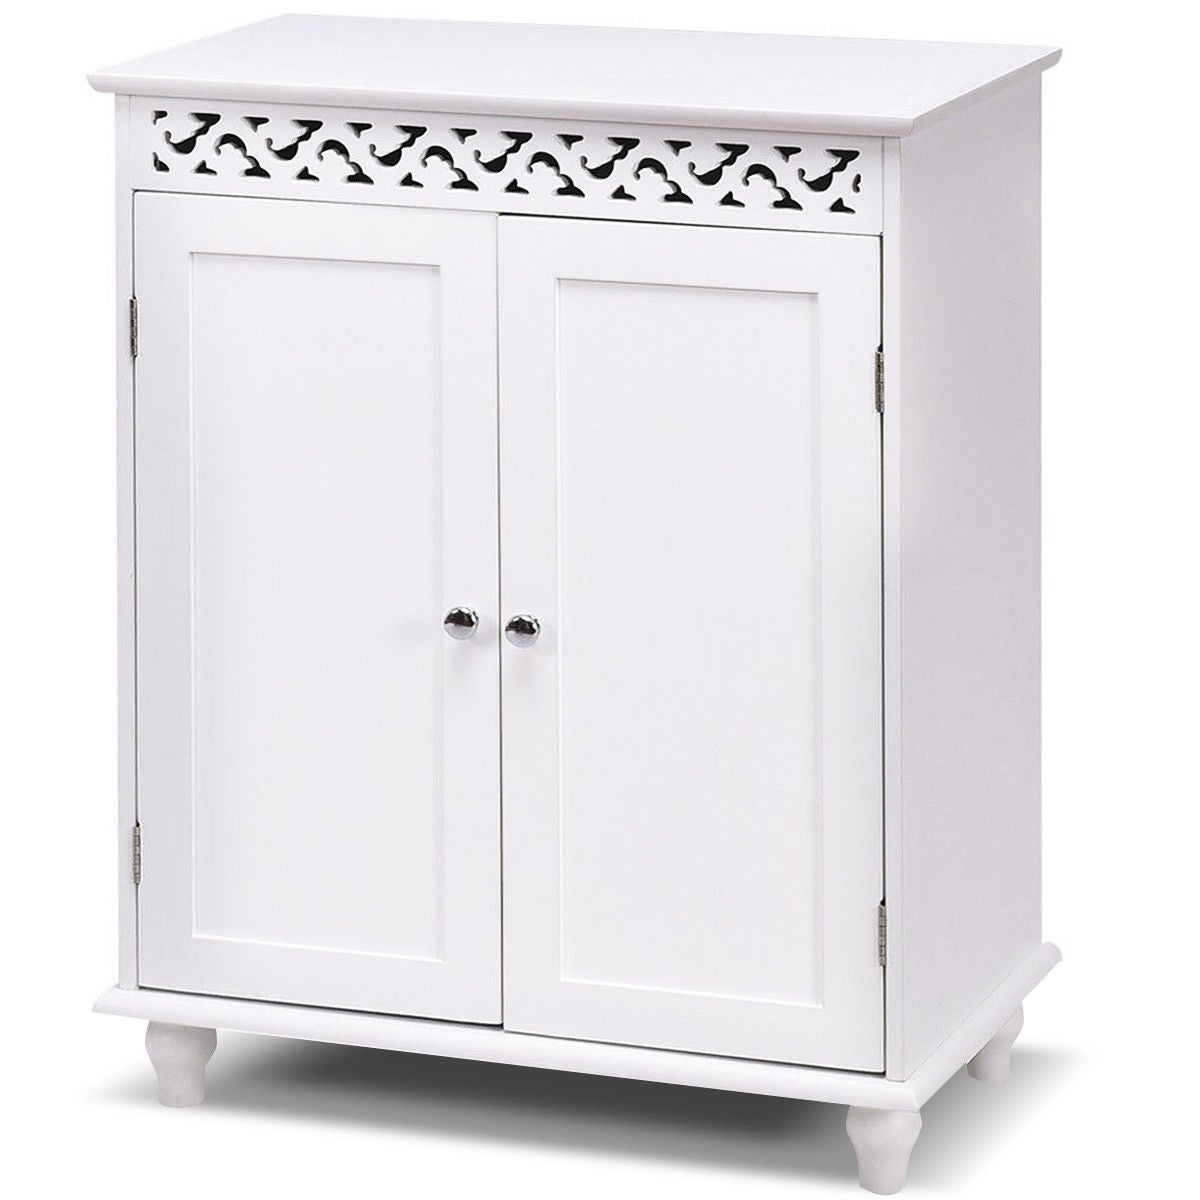 buy white bathroom cabinets storage online at overstock our best rh overstock com small white storage cabinet for kitchen small white storage cabinet for kitchen